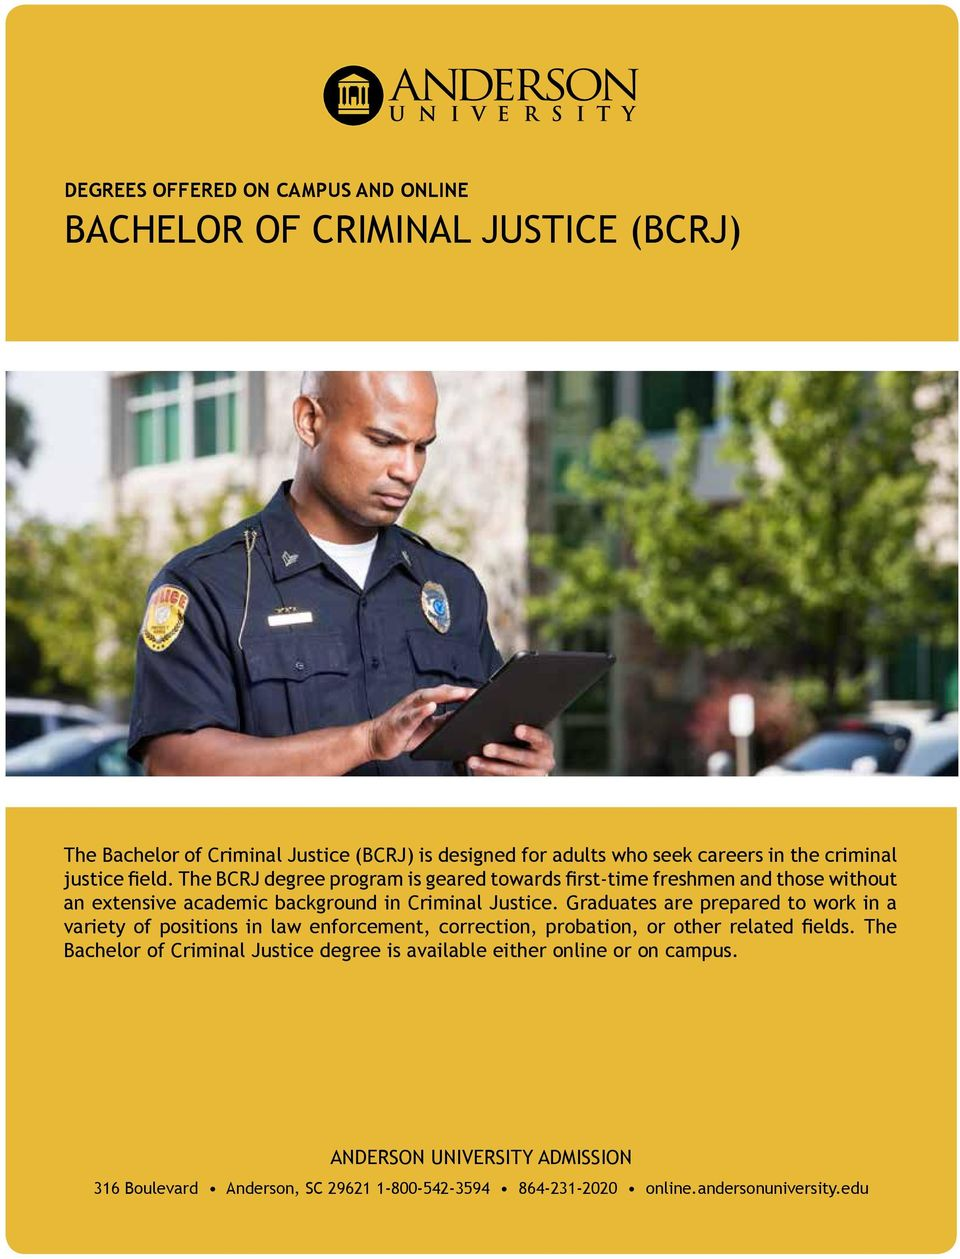 Graduates are prepared to work in a variety of positions in law enforcement, correction, probation, or other related fields.